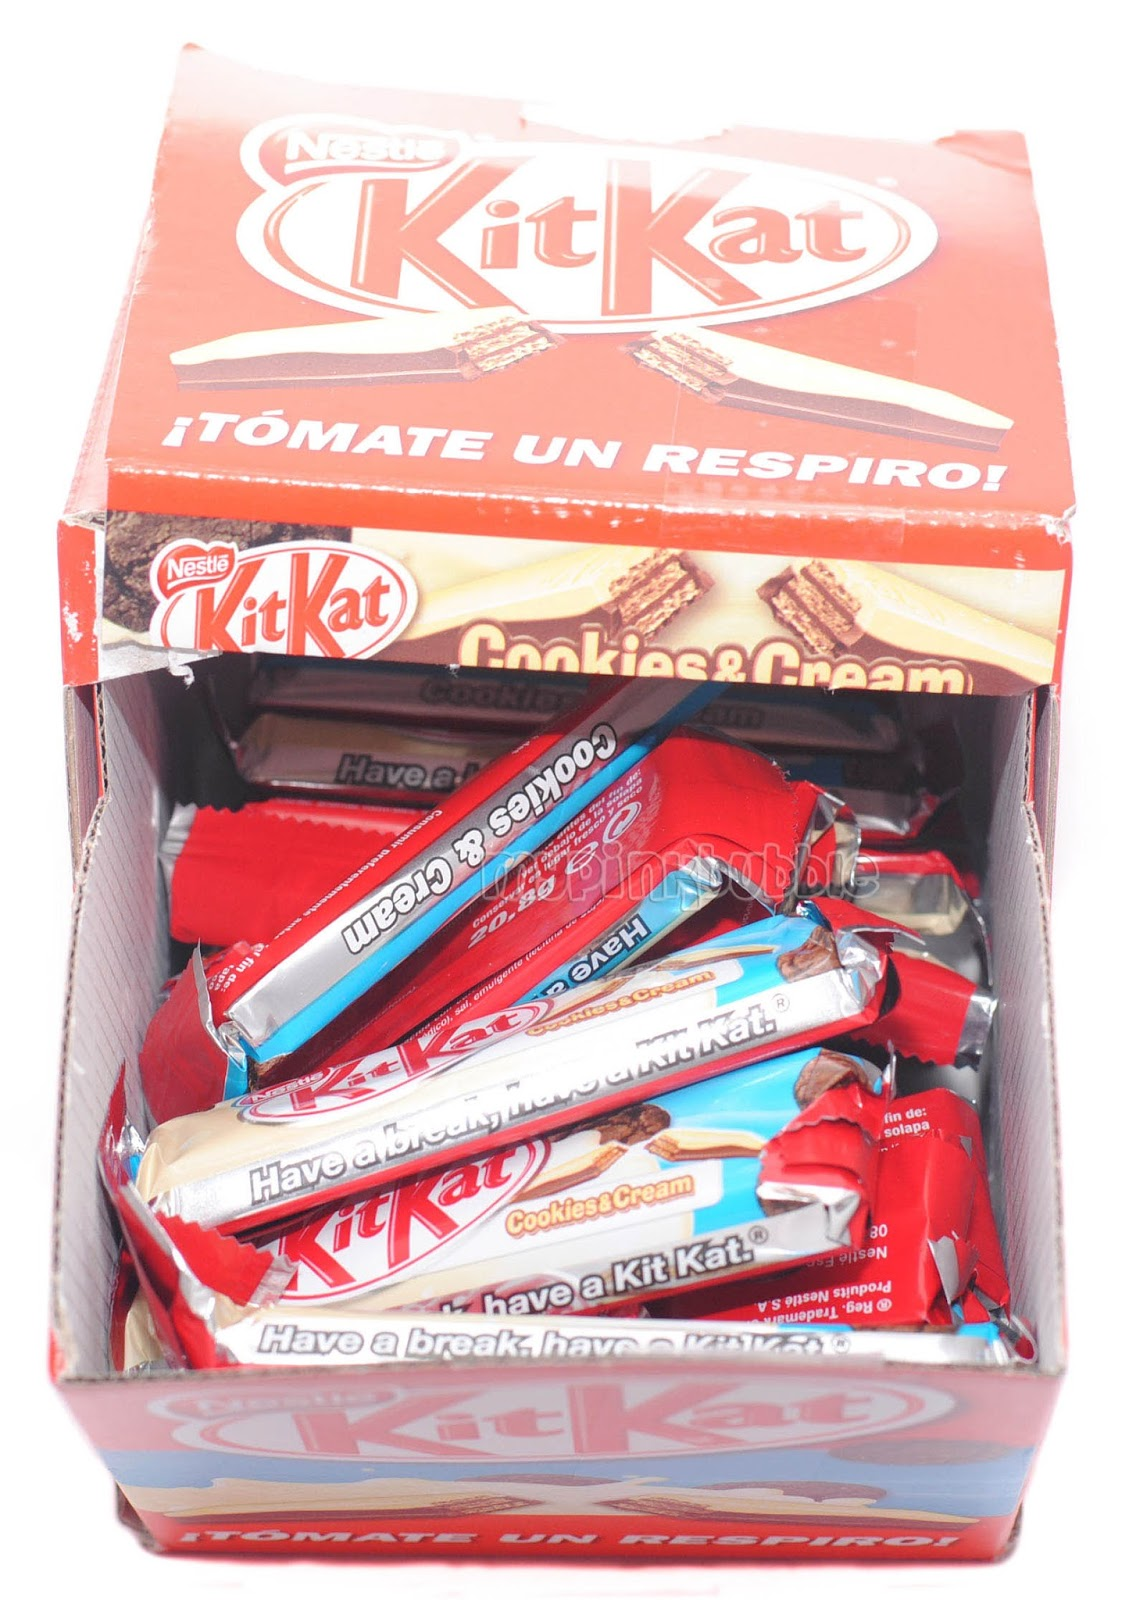 Kit kat cookies cream caja